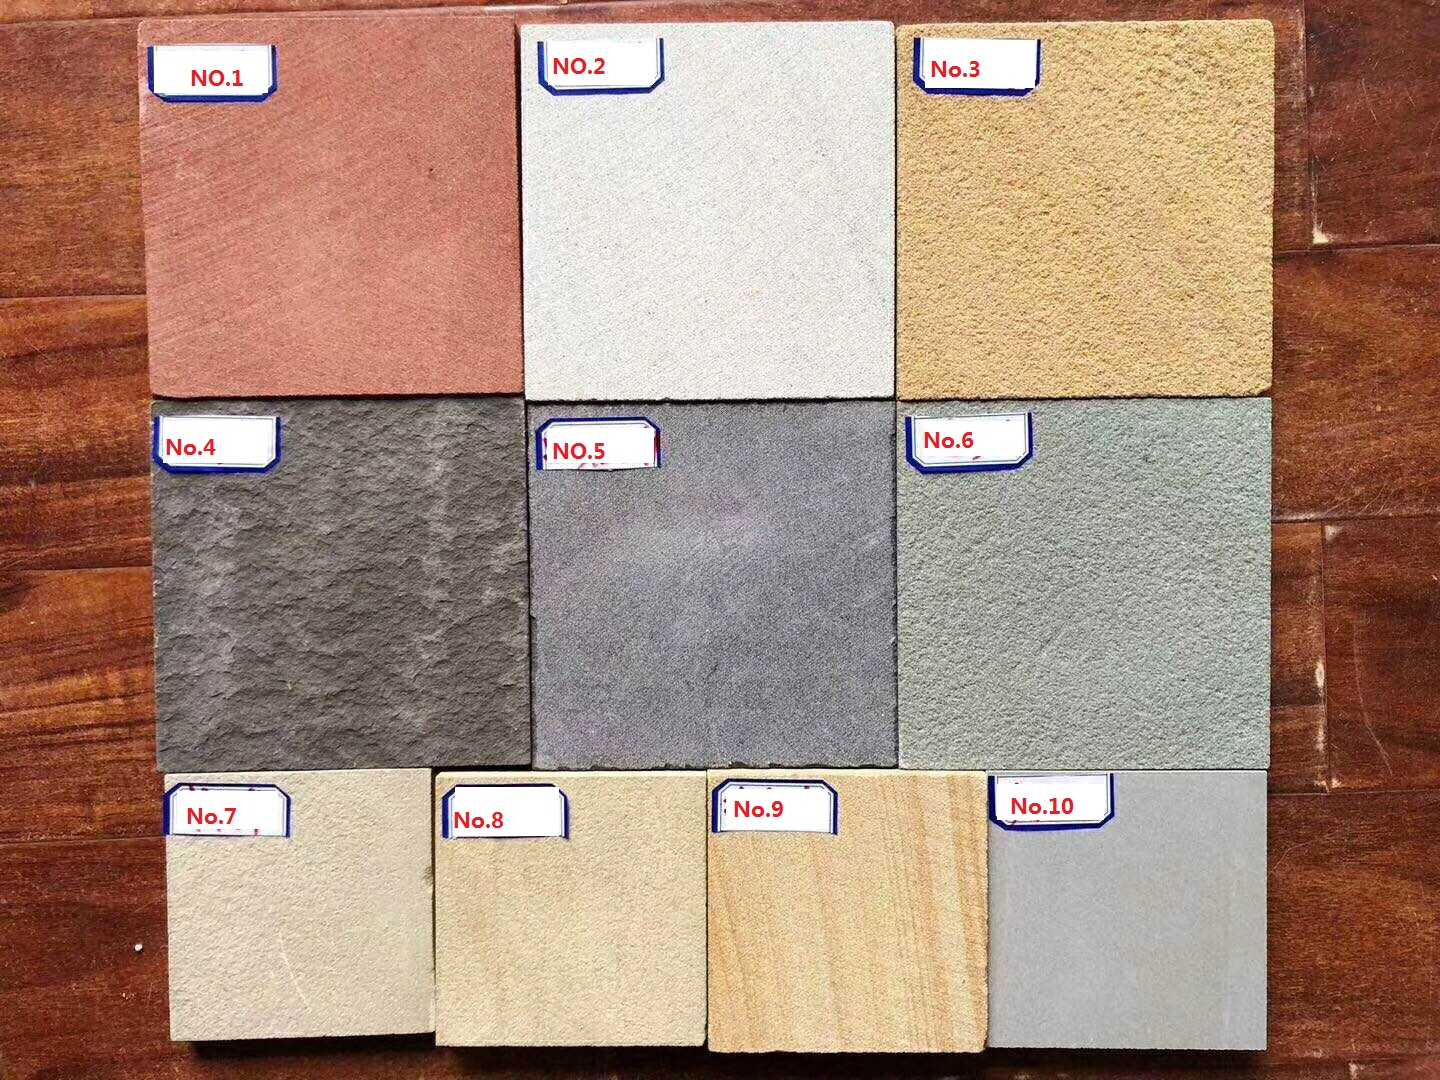 sandstone,sandstone blocks,sand stone,sandstone slabs for sale,sandstone blocks price,sandstone tiles,sandstone pavers,indian sandstone